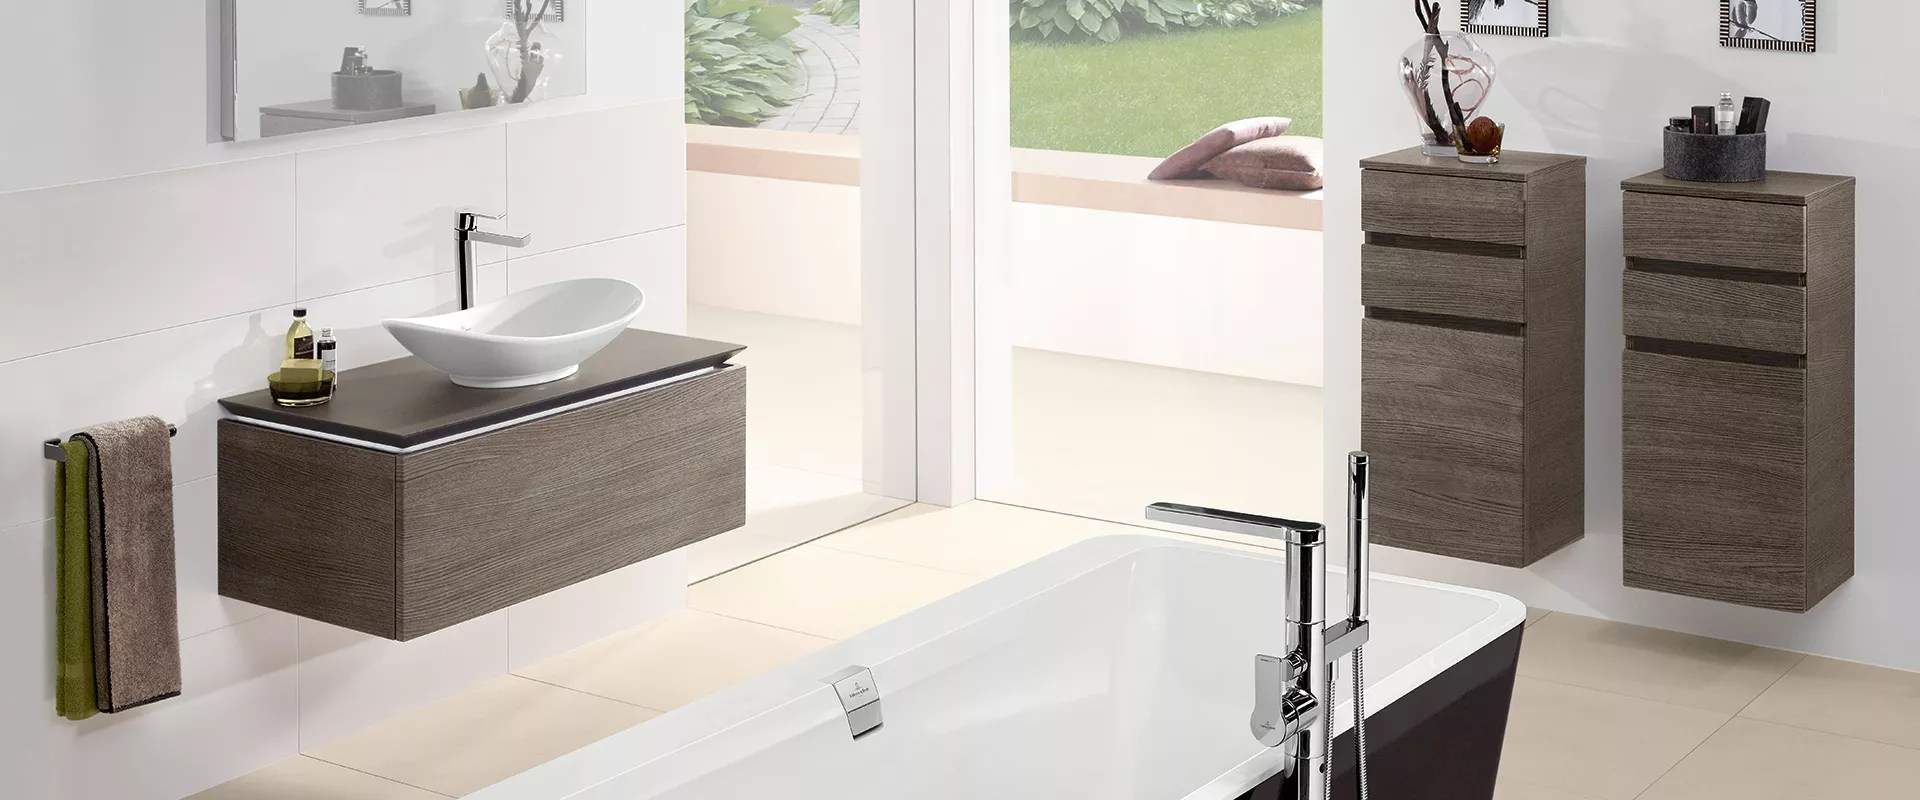 Levanto Collection By Villeroy Boch Modern Comfort - Villeroy Und Boch Bad Dwg